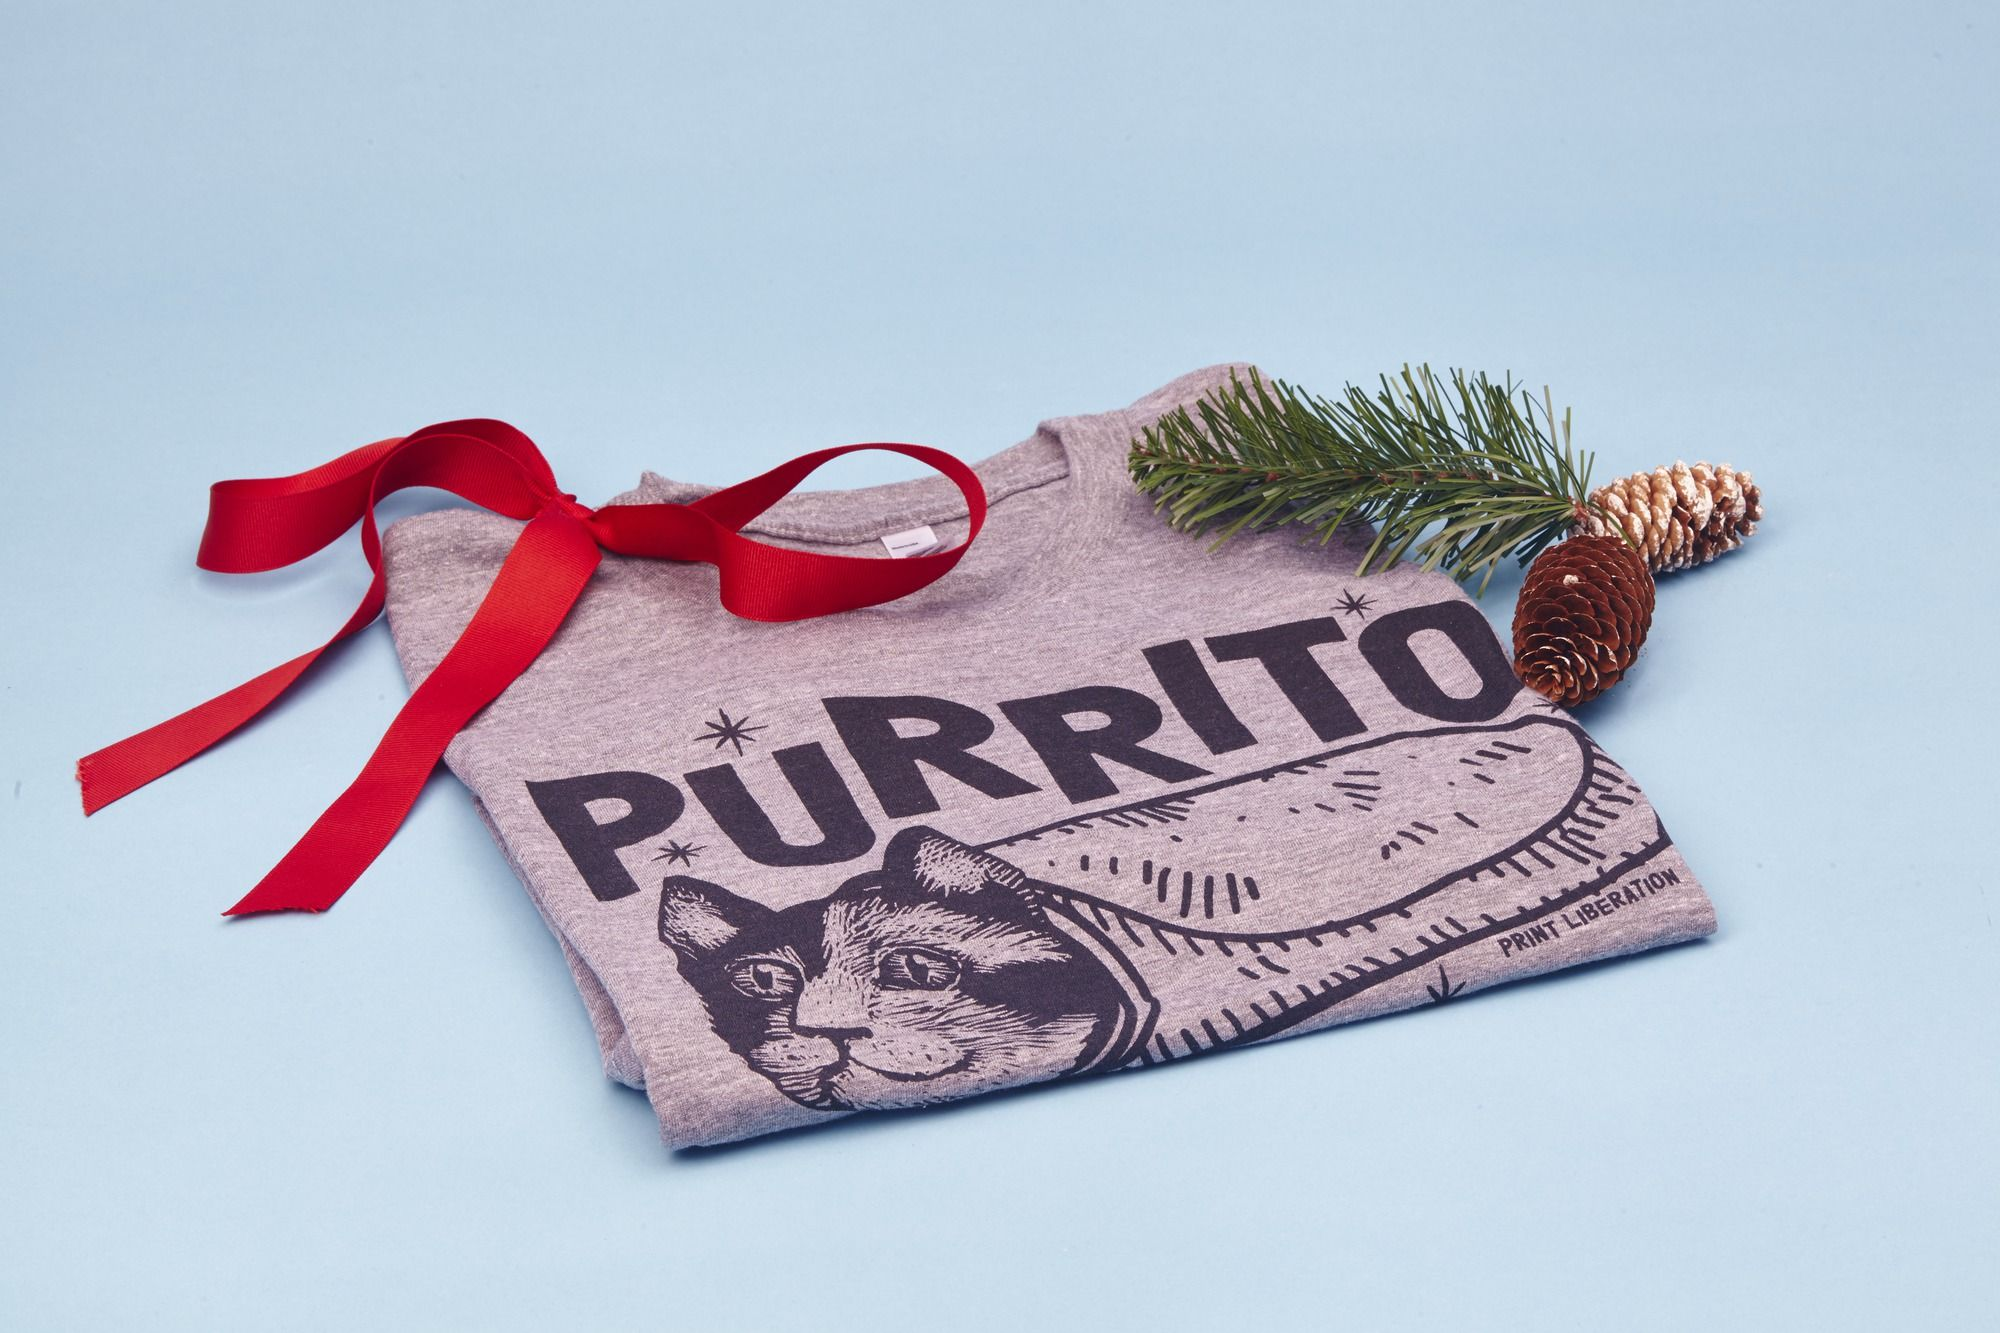 Hangover Chic in Eater's 2014 holiday gift guide: http://www.eater.com/a/holiday-gift-ideas-2014/hipster-stuff/#hangover-chic